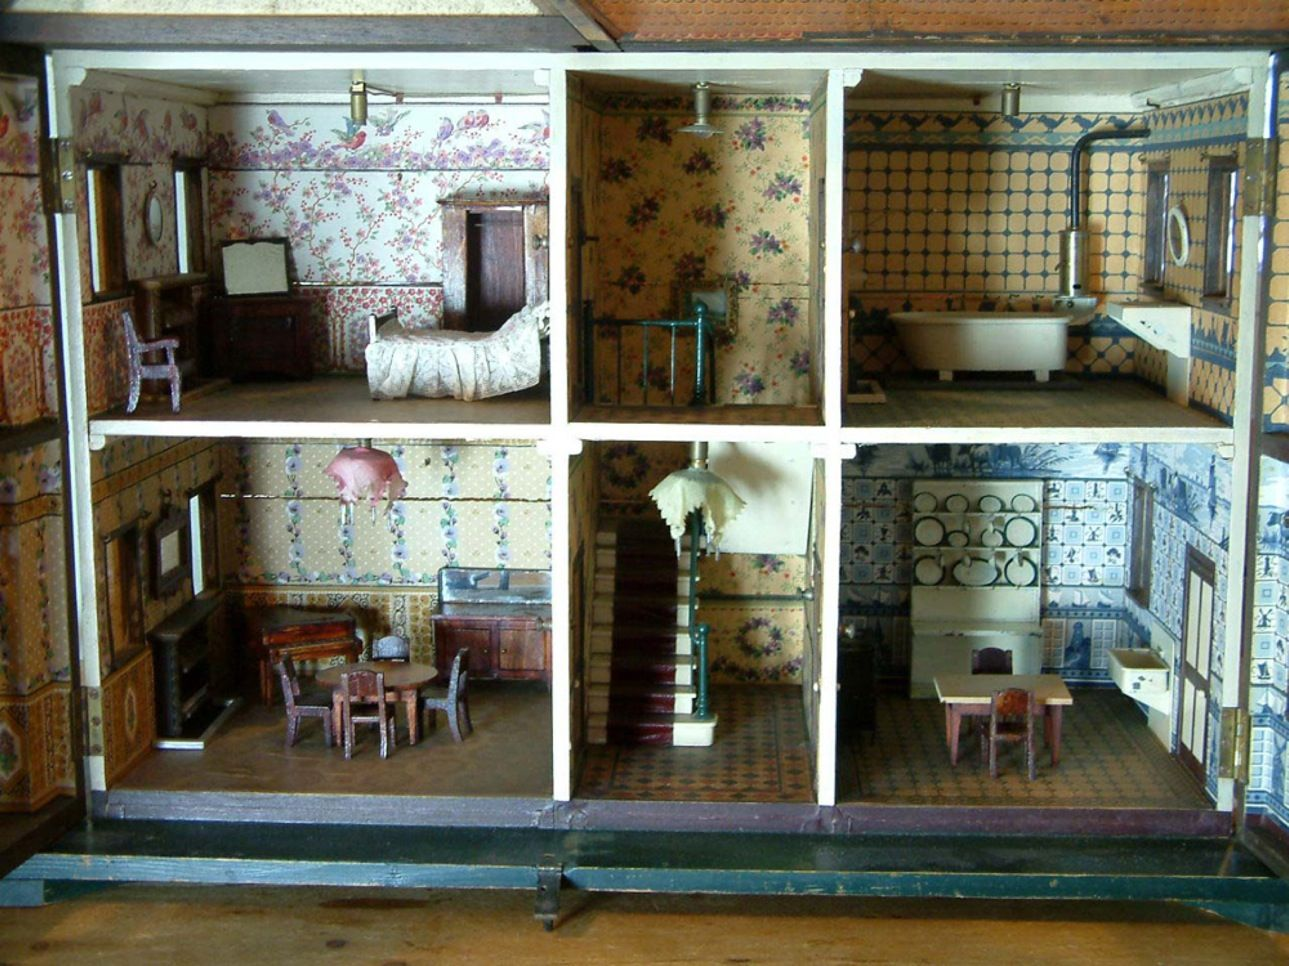 Wonderful Vintage Dollhouse Furniture For Sale Part - 11: For Sale: Books U0026 Mags - Dolls Houses Past U0026 Present (Bubbyu0027s House With ·  Dollhouse InteriorsDollhouse DesignDollhouse FurnitureVintage ...